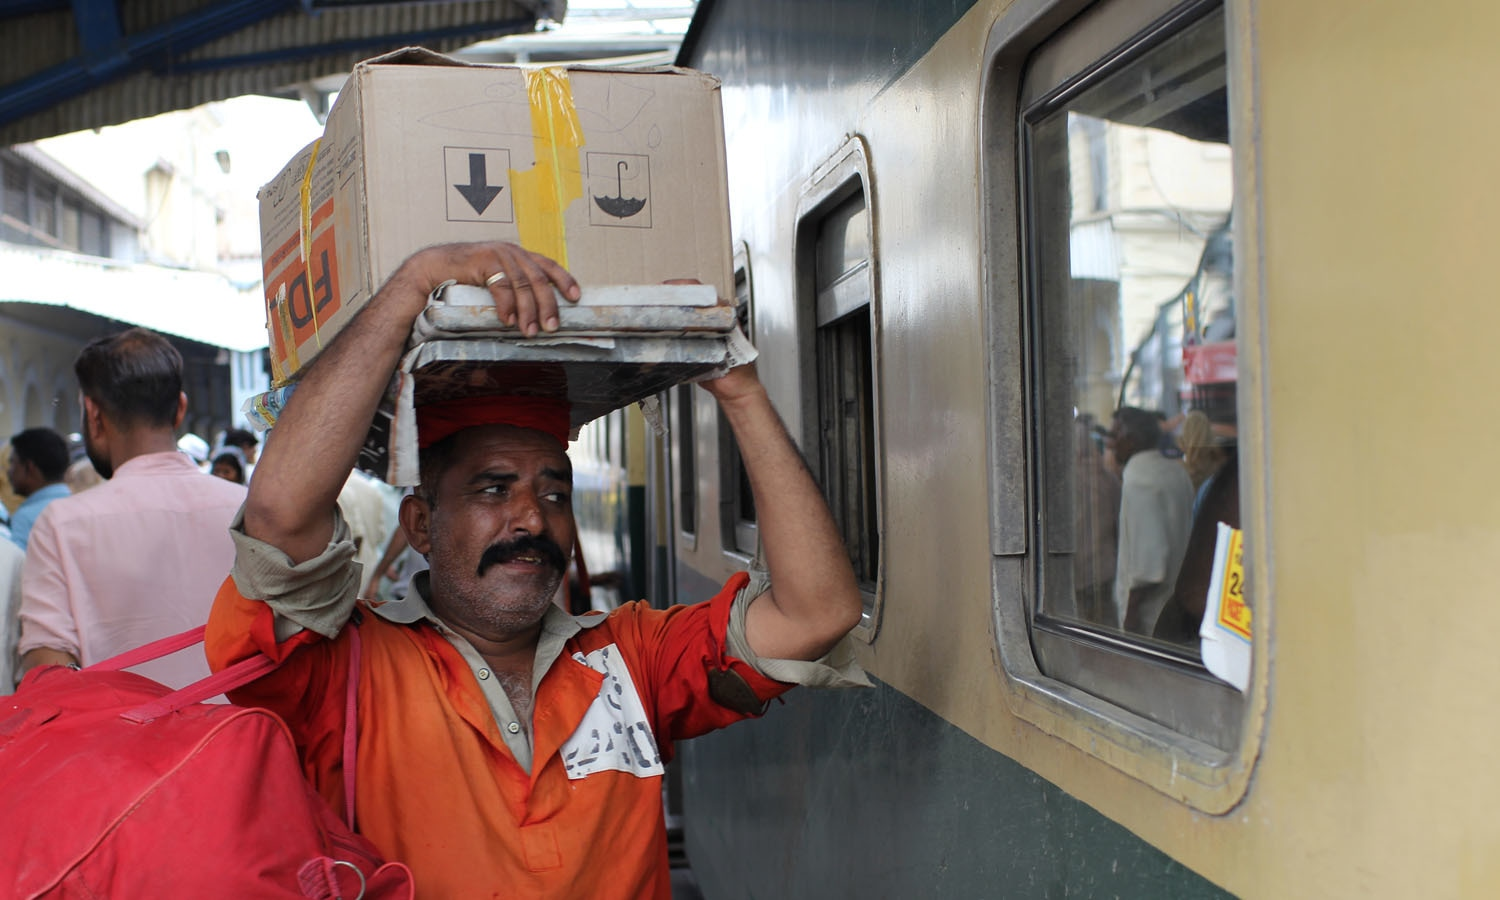 Life of a porter is not an easy one, they have to keep up with the pace of passengers and their luggage.